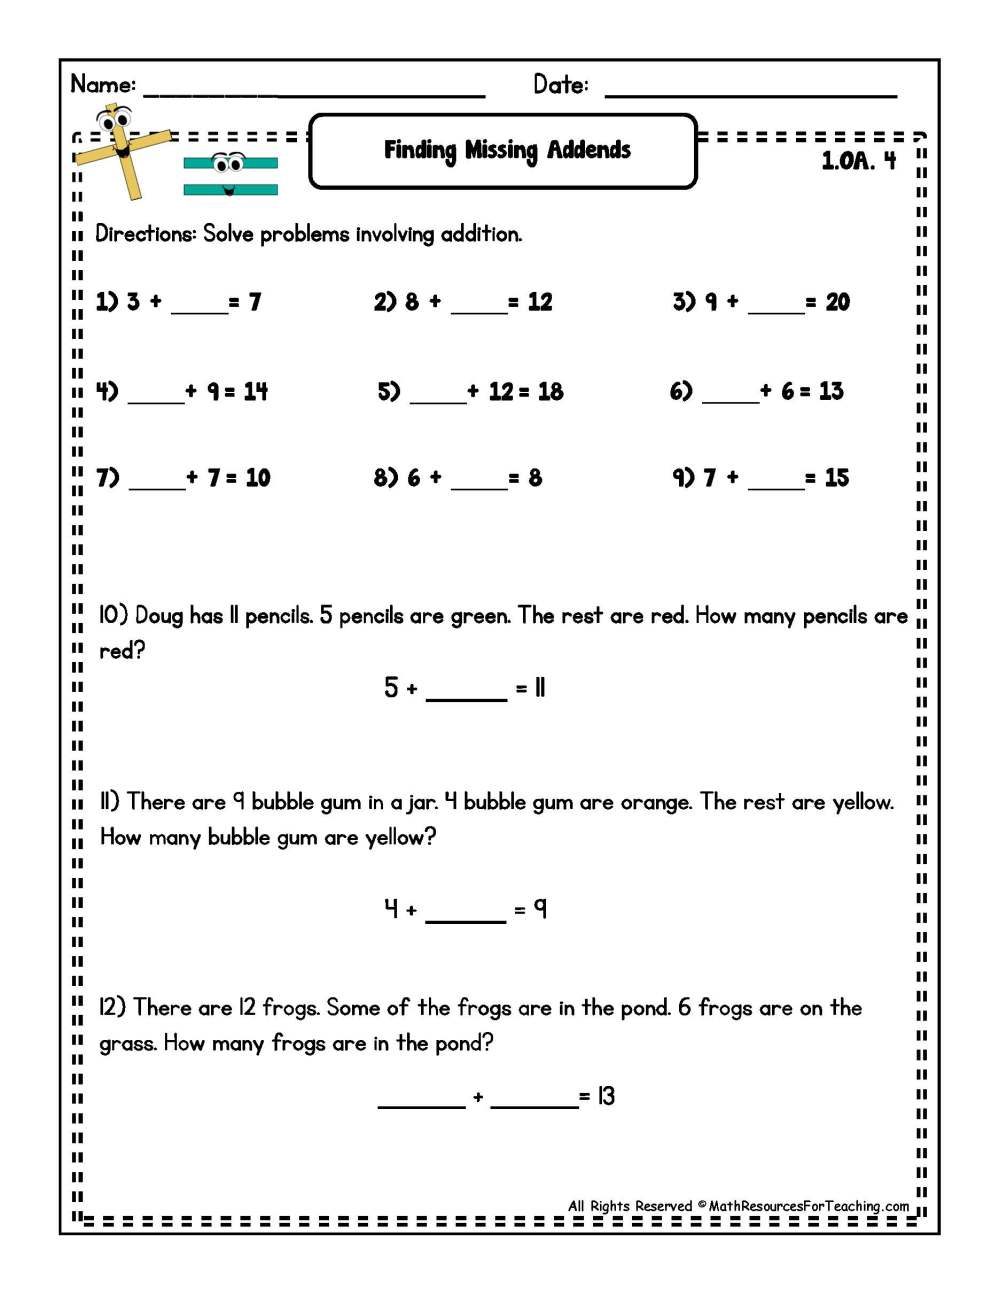 medium resolution of Missing Addend Worksheets   Printable Worksheets and Activities for  Teachers